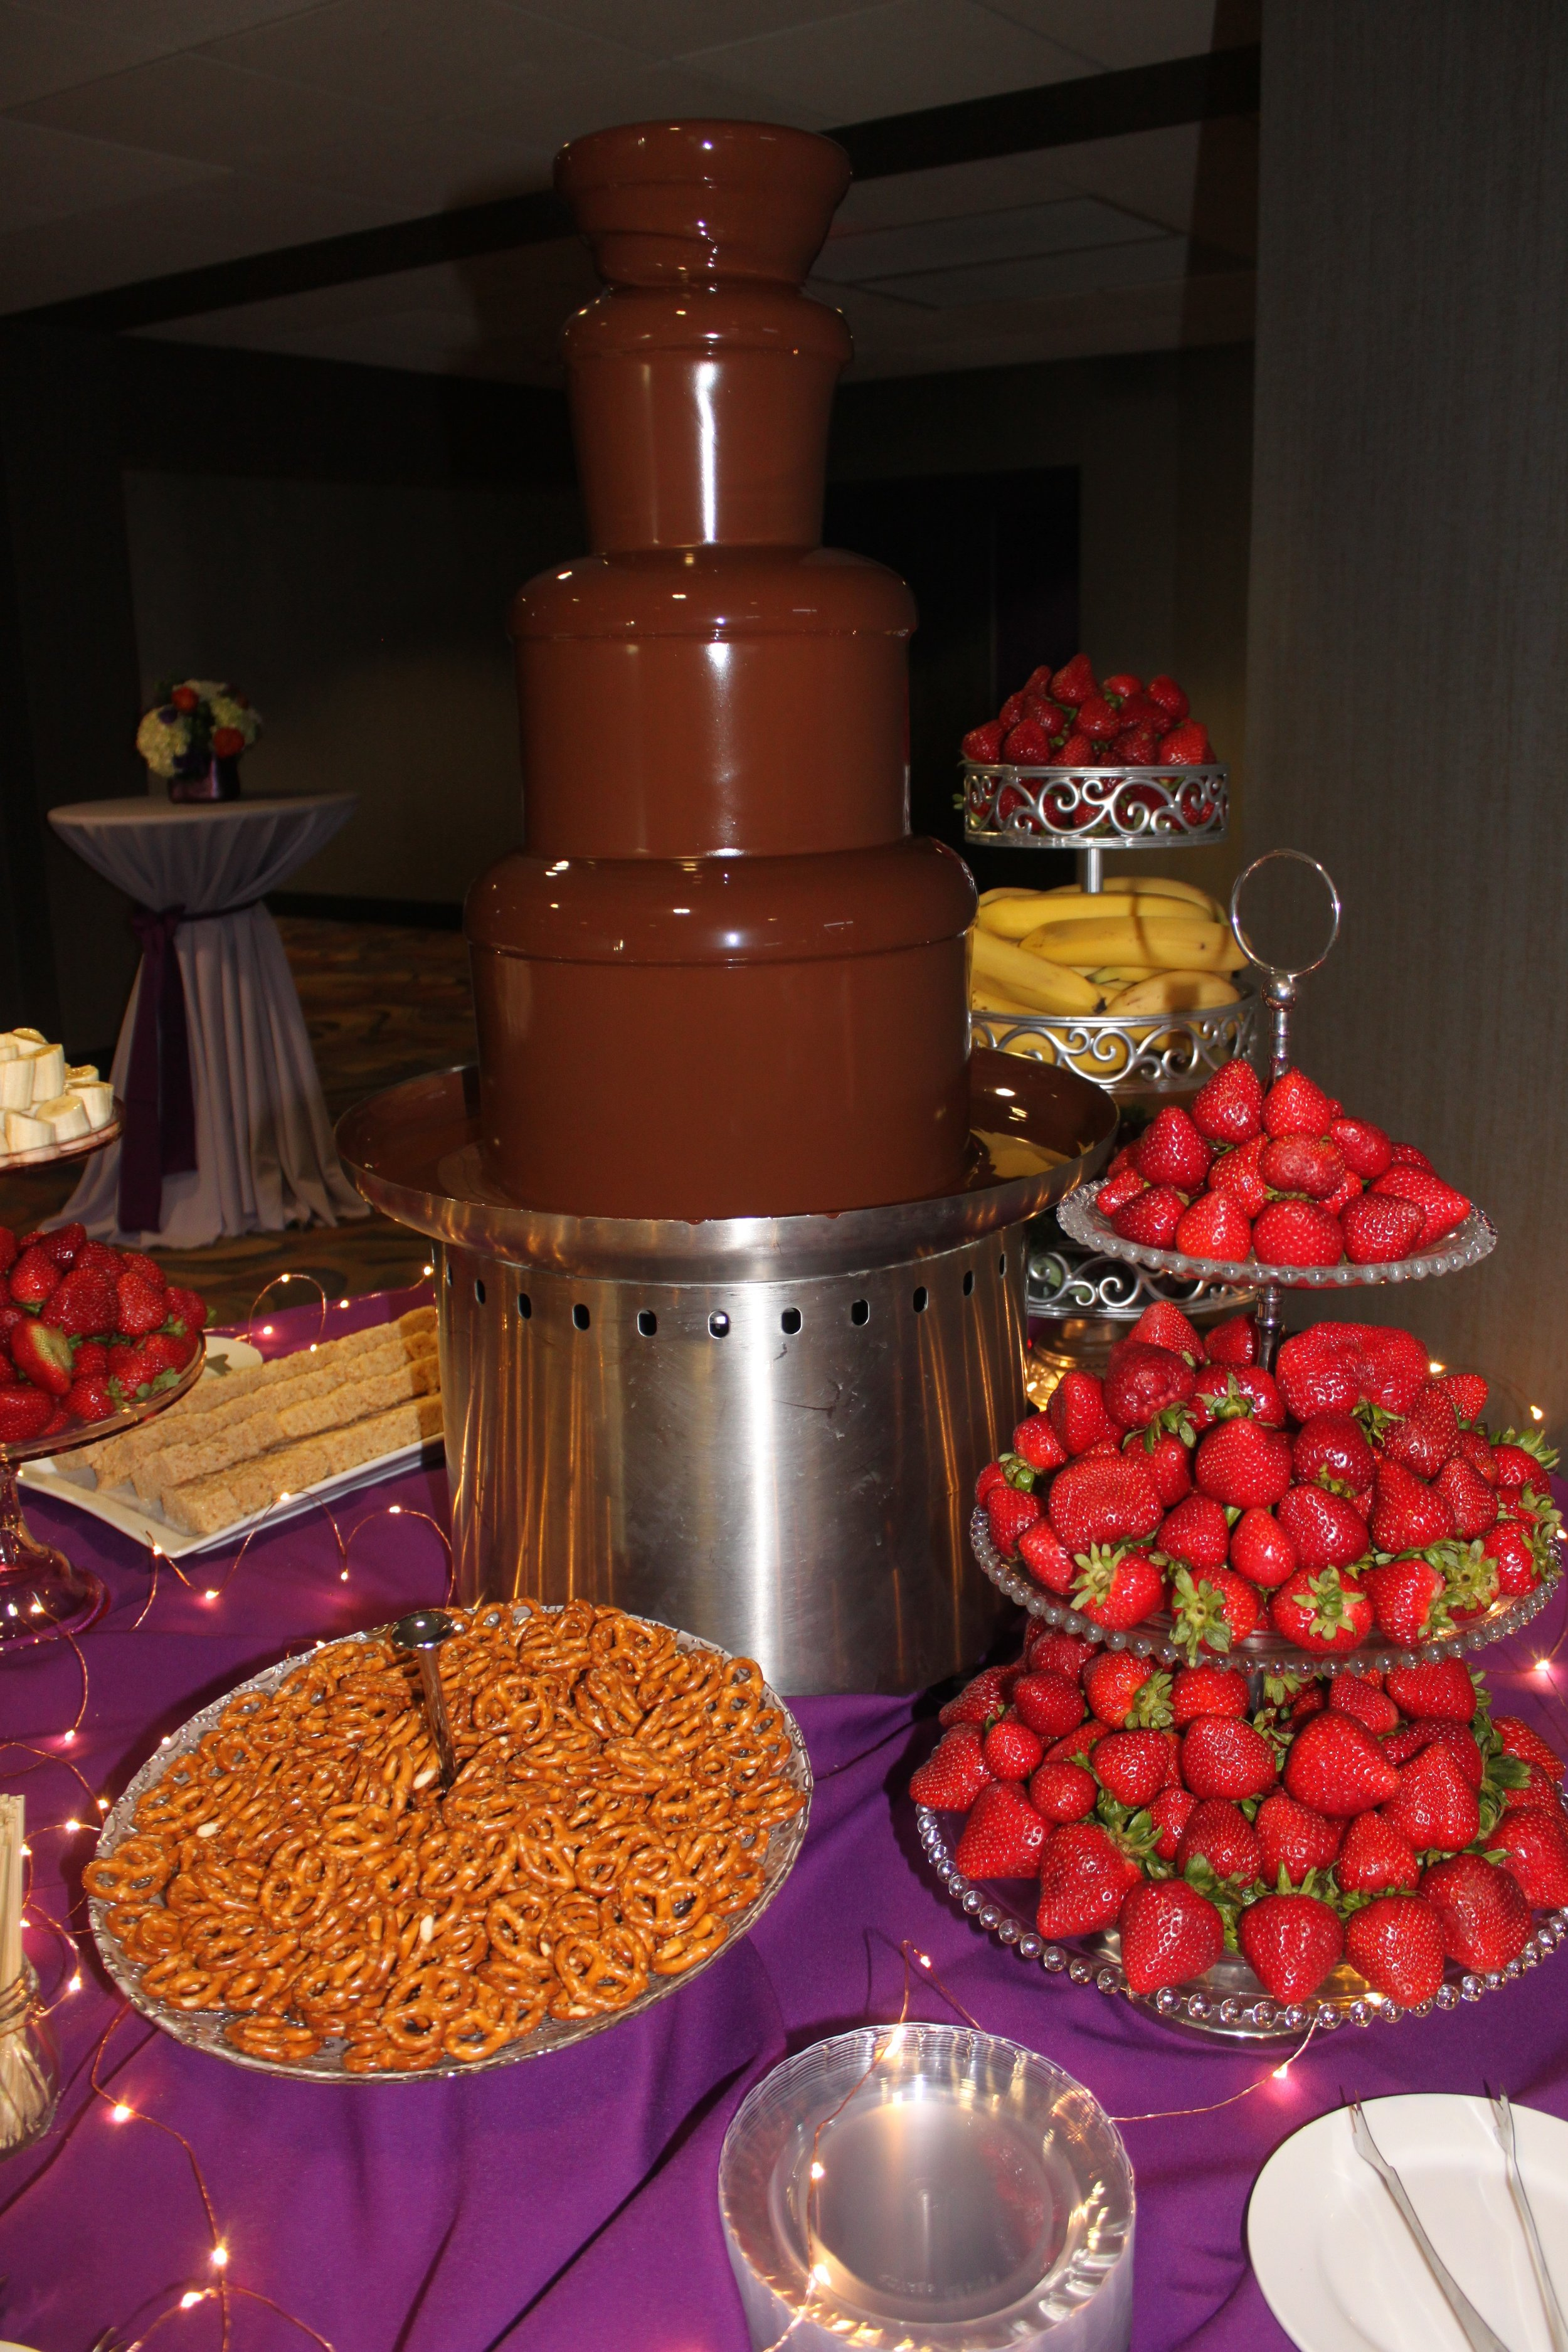 Chocolate Fountain - Energize your next event with a spectacular fountain cascading with warm Belgian chocolatePackage includes:4-Tier Fountain with Premium Dark Belgian ChocolateOptional Dipping Items:Strawberries, Bananas, Pineapple, Cherries, and BlueberriesPretzels, Marshmallows, Rice Krispie Treats,Lady Finger Cookies, and Fudge Brownie Triangles